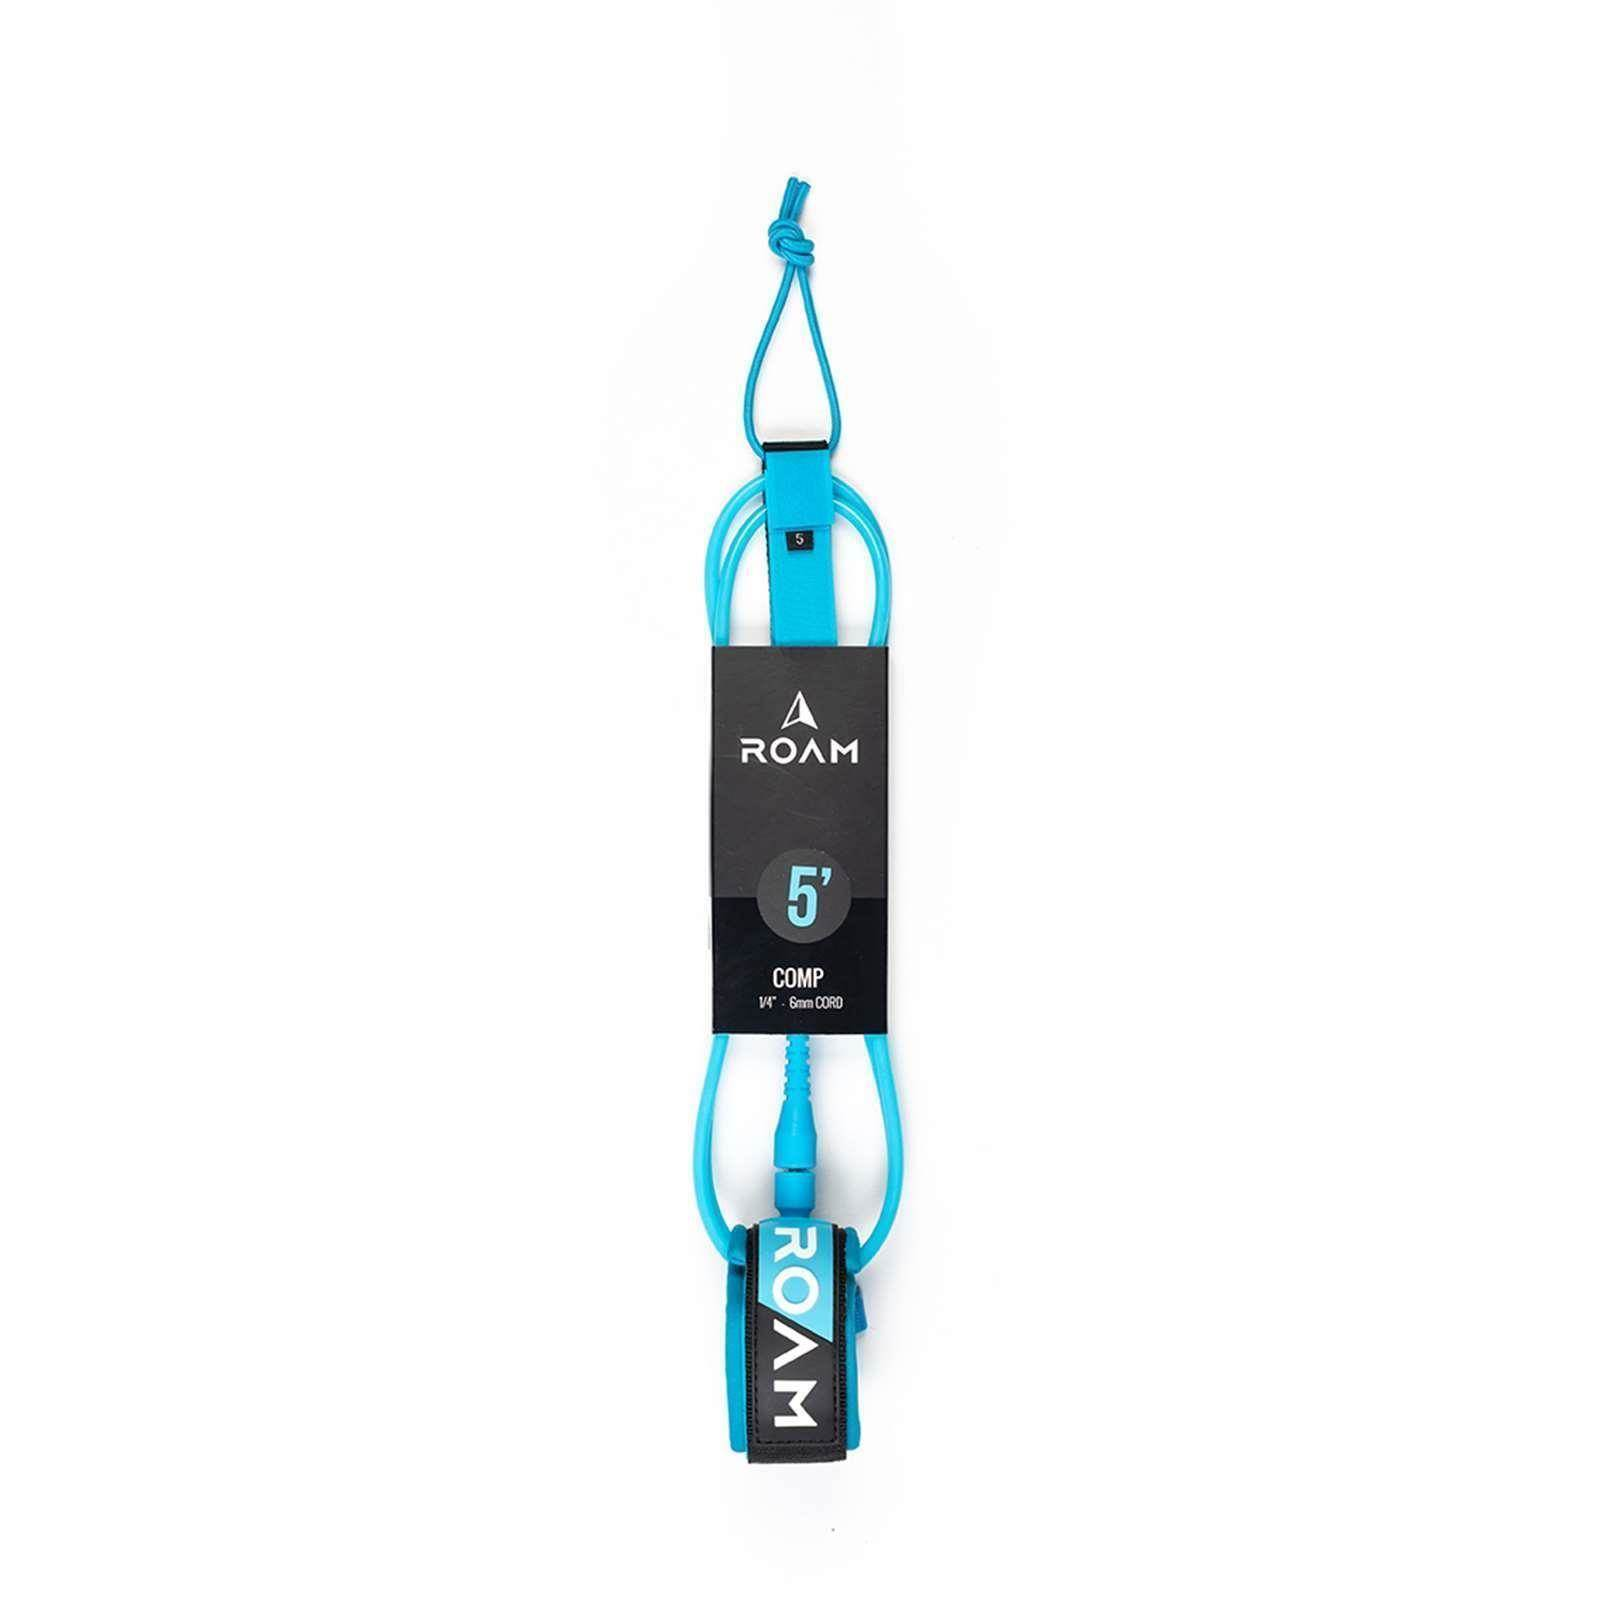 ROAM Surfboard Leash Comp 5.0 152cm 6mm Blau